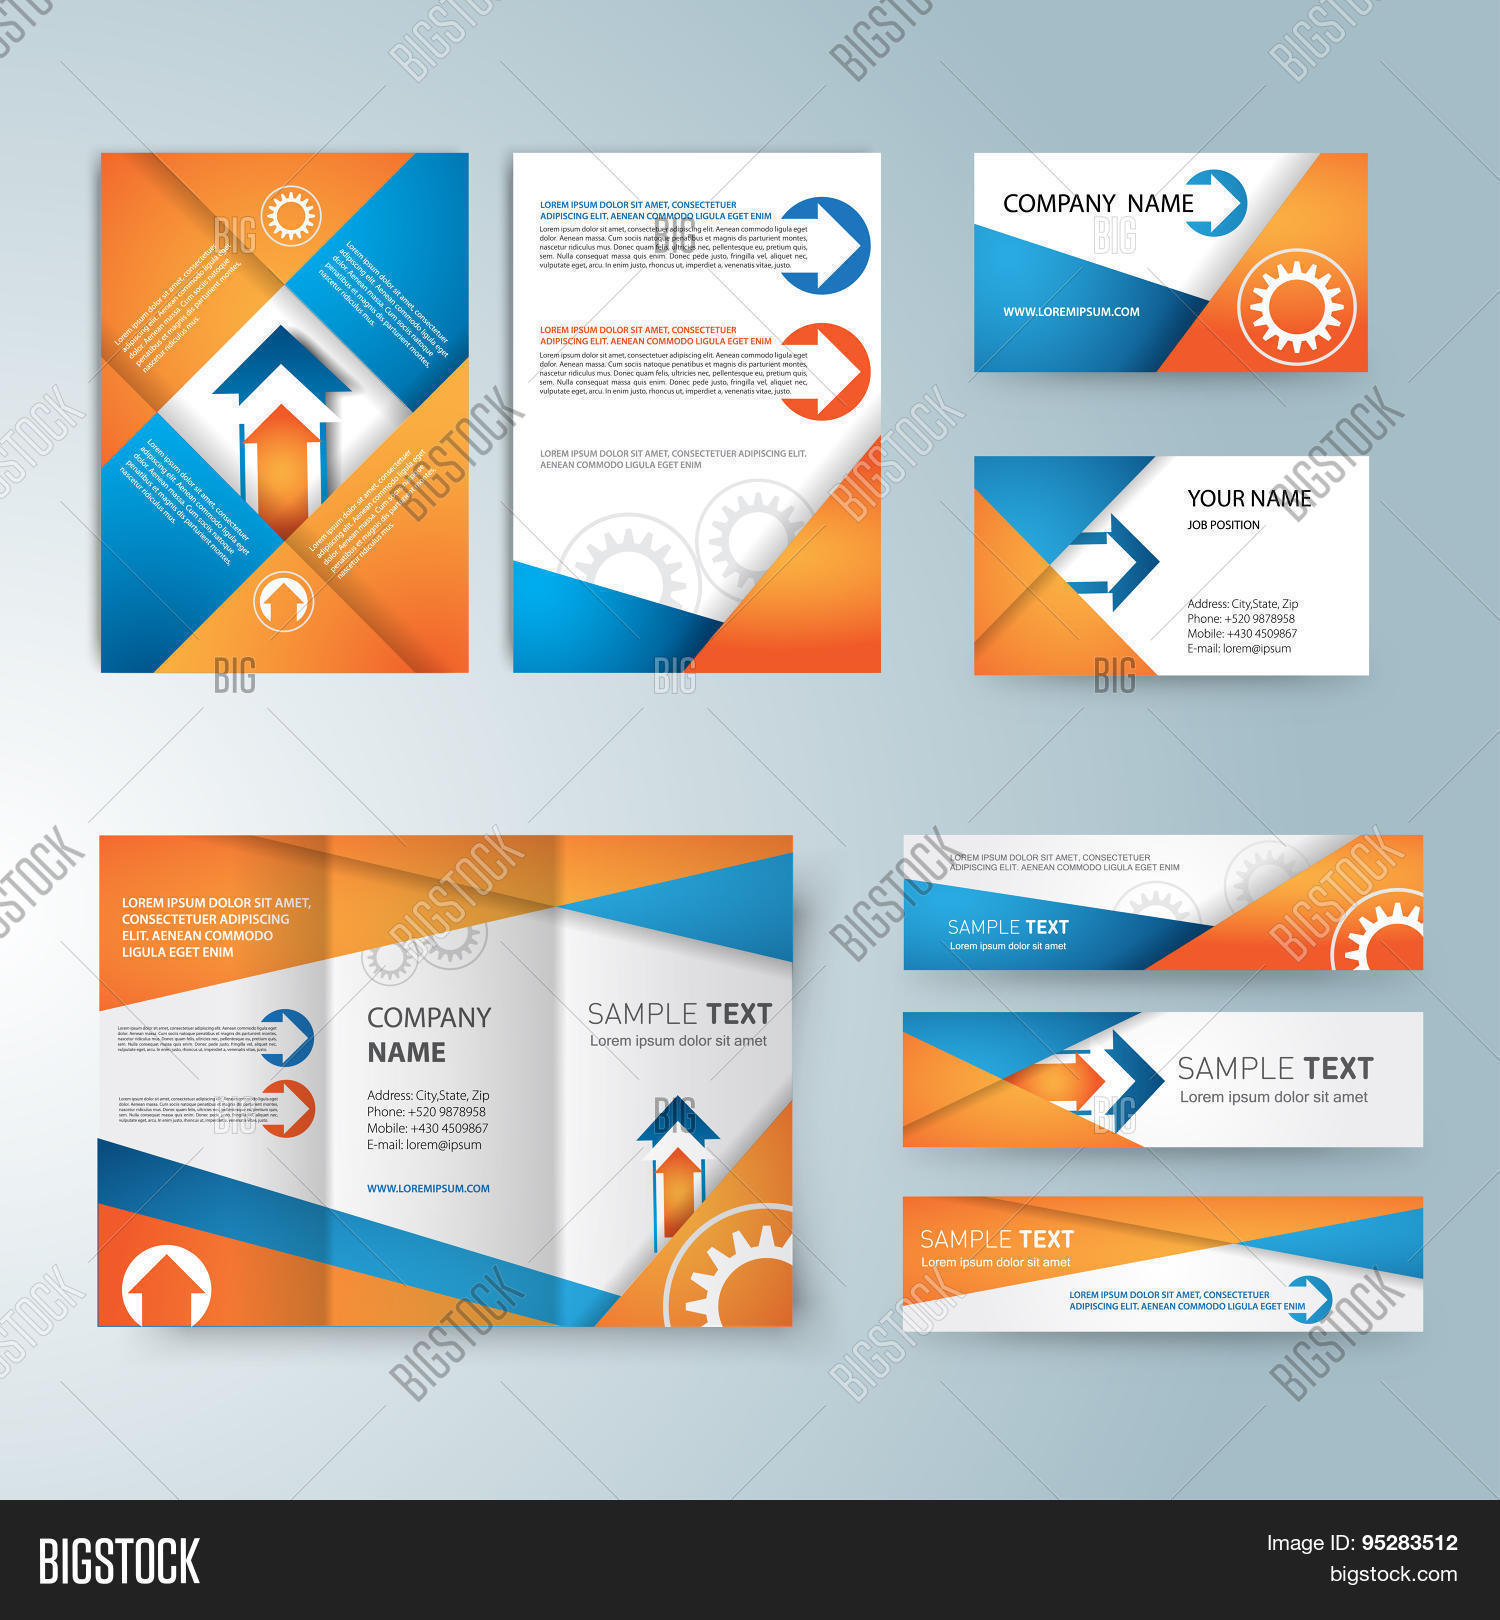 corporate identity templates with blank name card folded paper